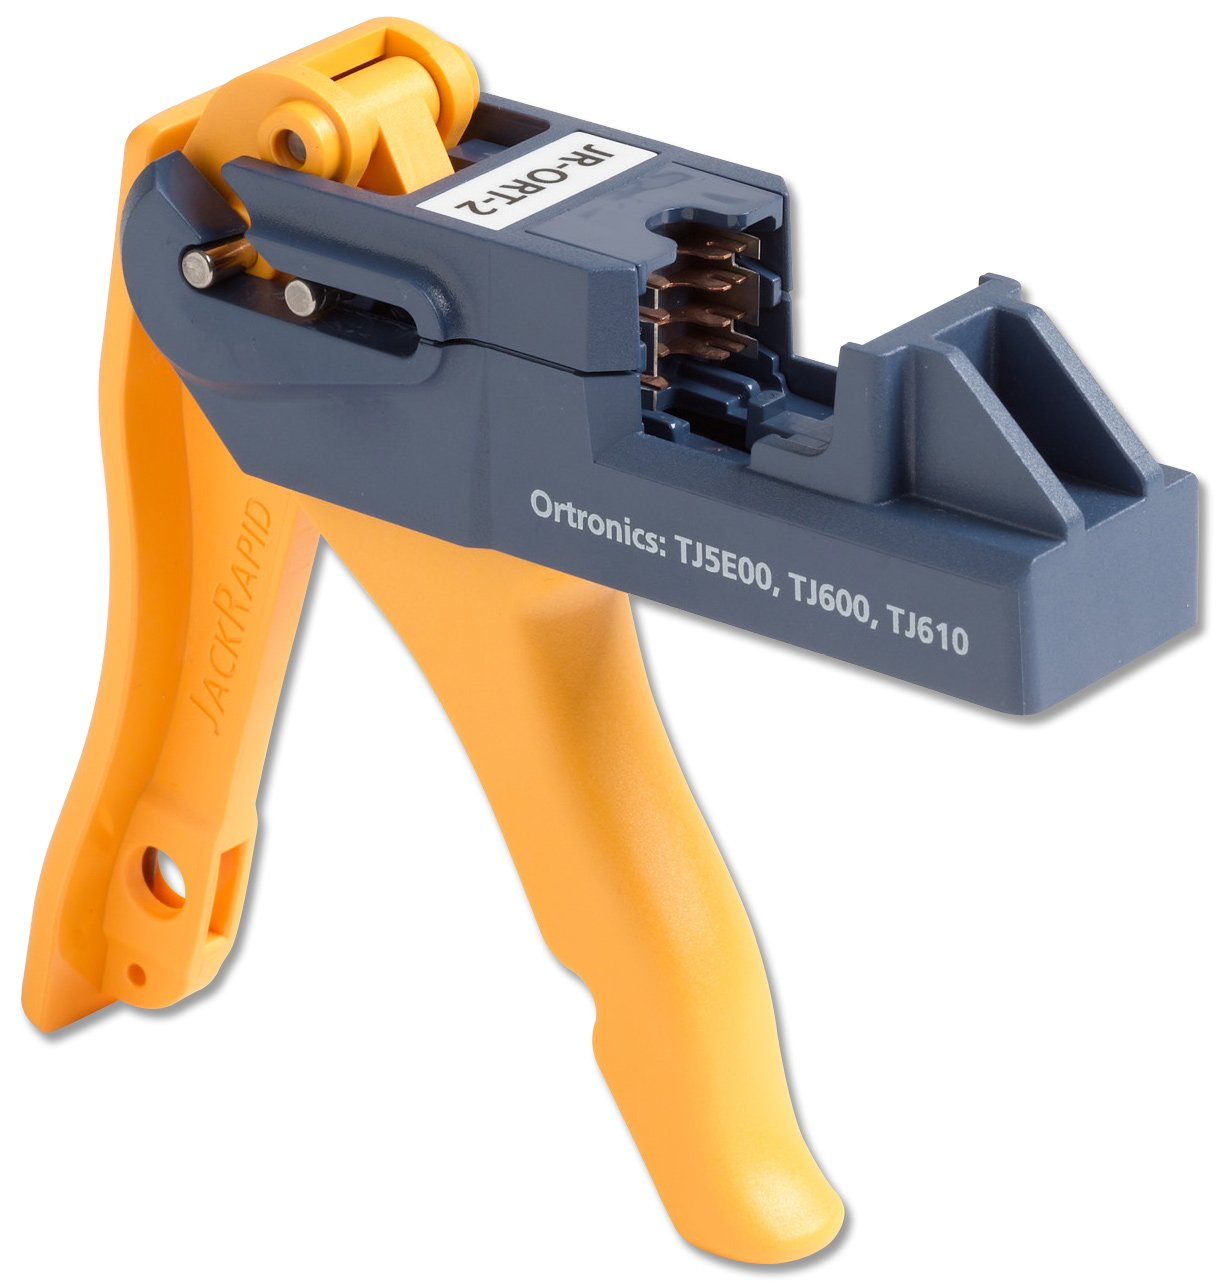 Fluke Networks Jr Ort 2 Jackrapid Punch Down Tool For Ortronics Patch Ethernet Wiring Diagram Tj5e00 Tj600 Tj610 Cable Insertion And Extraction Tools Industrial